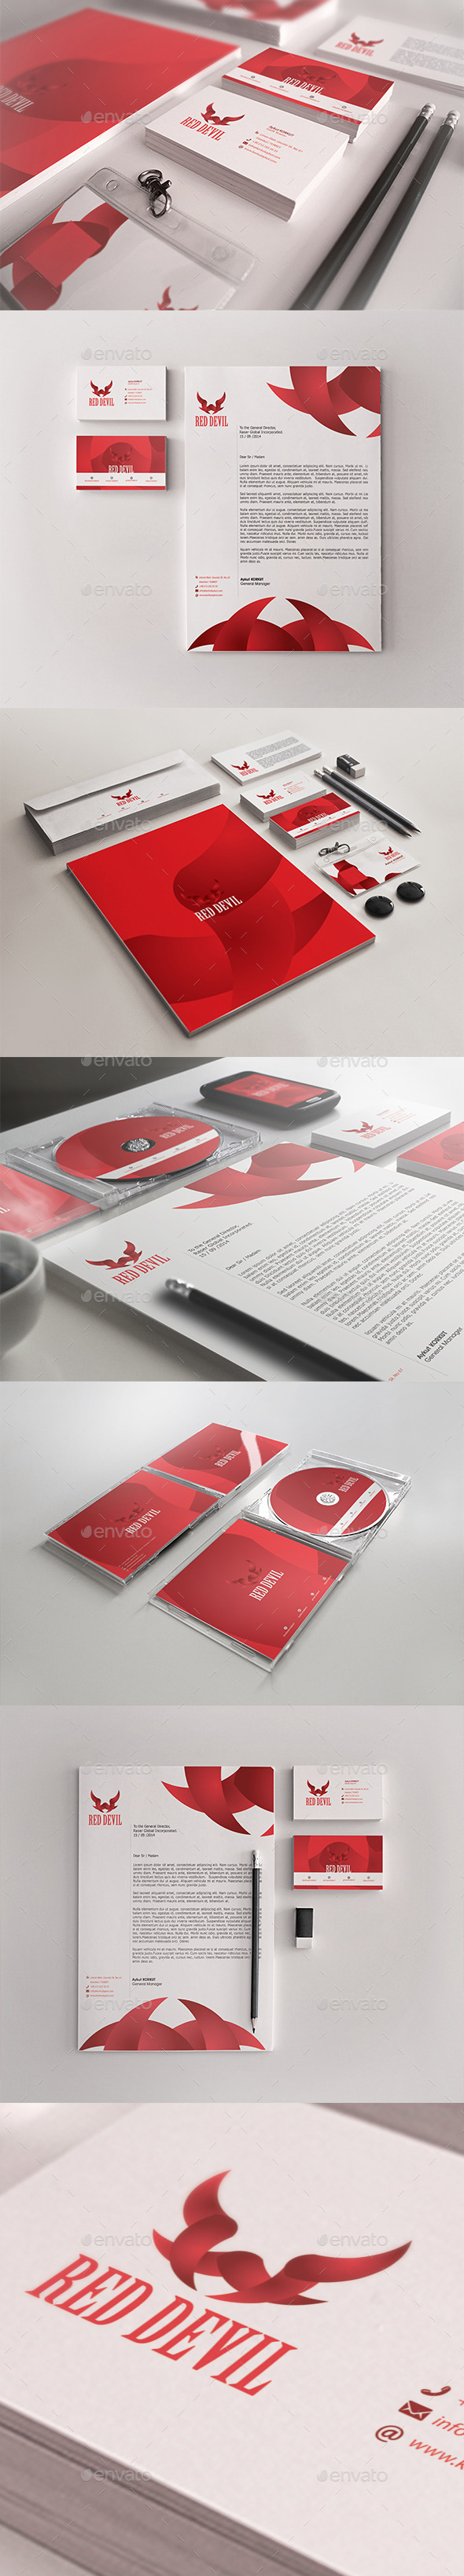 Red Devil Corporate Identity Package - Stationery Print Templates